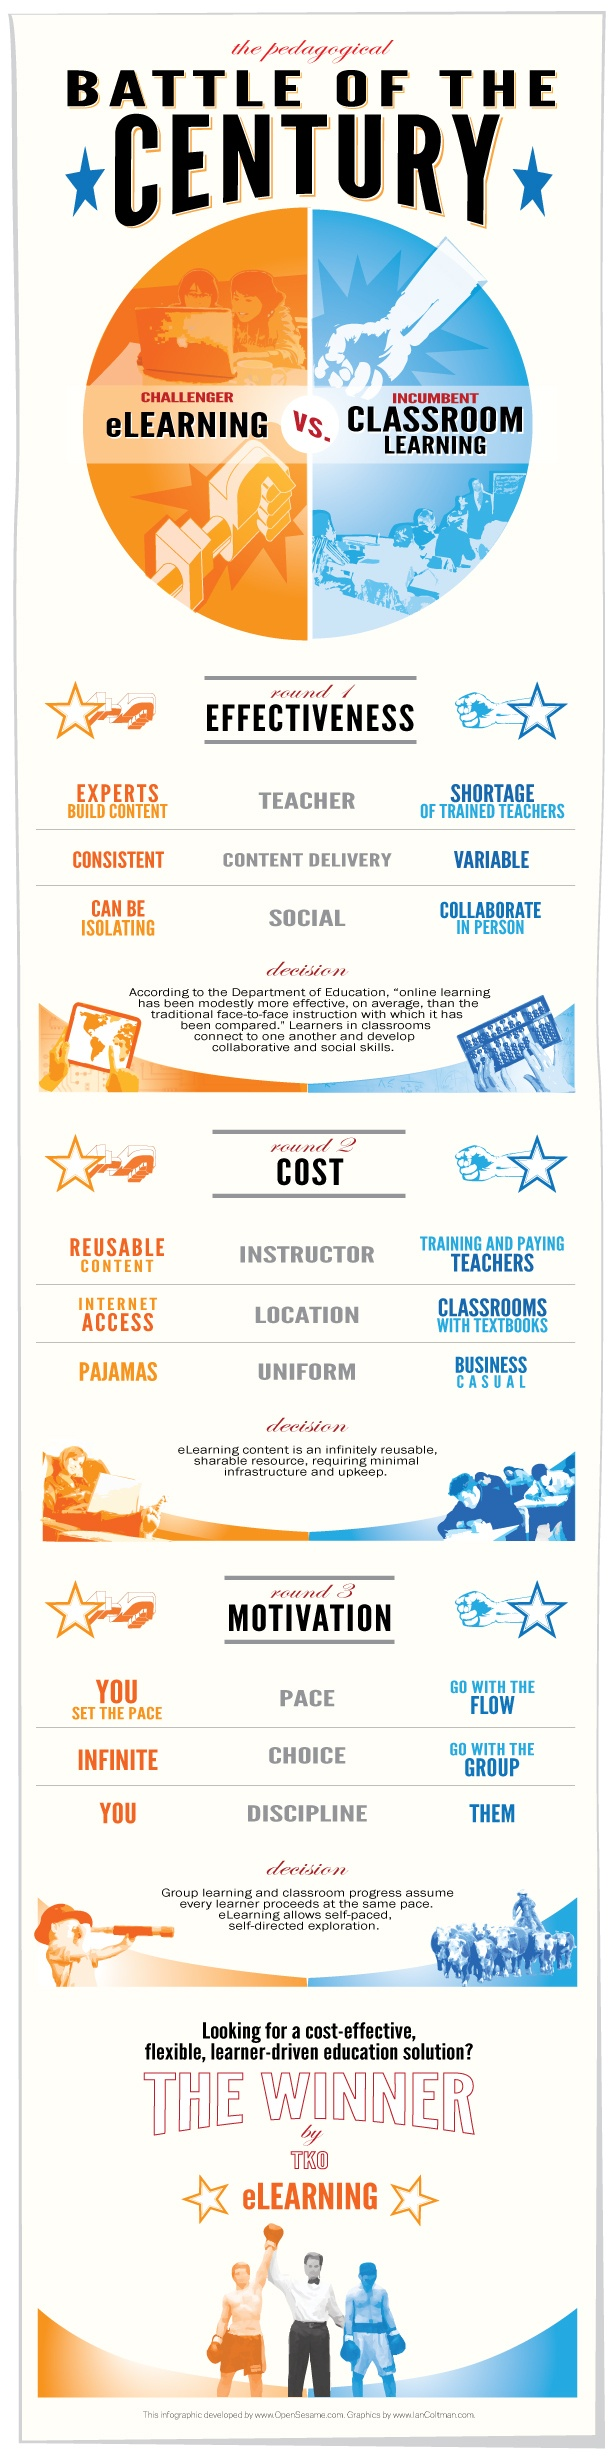 eLearning-vs-Classroom-Learning-Infographic